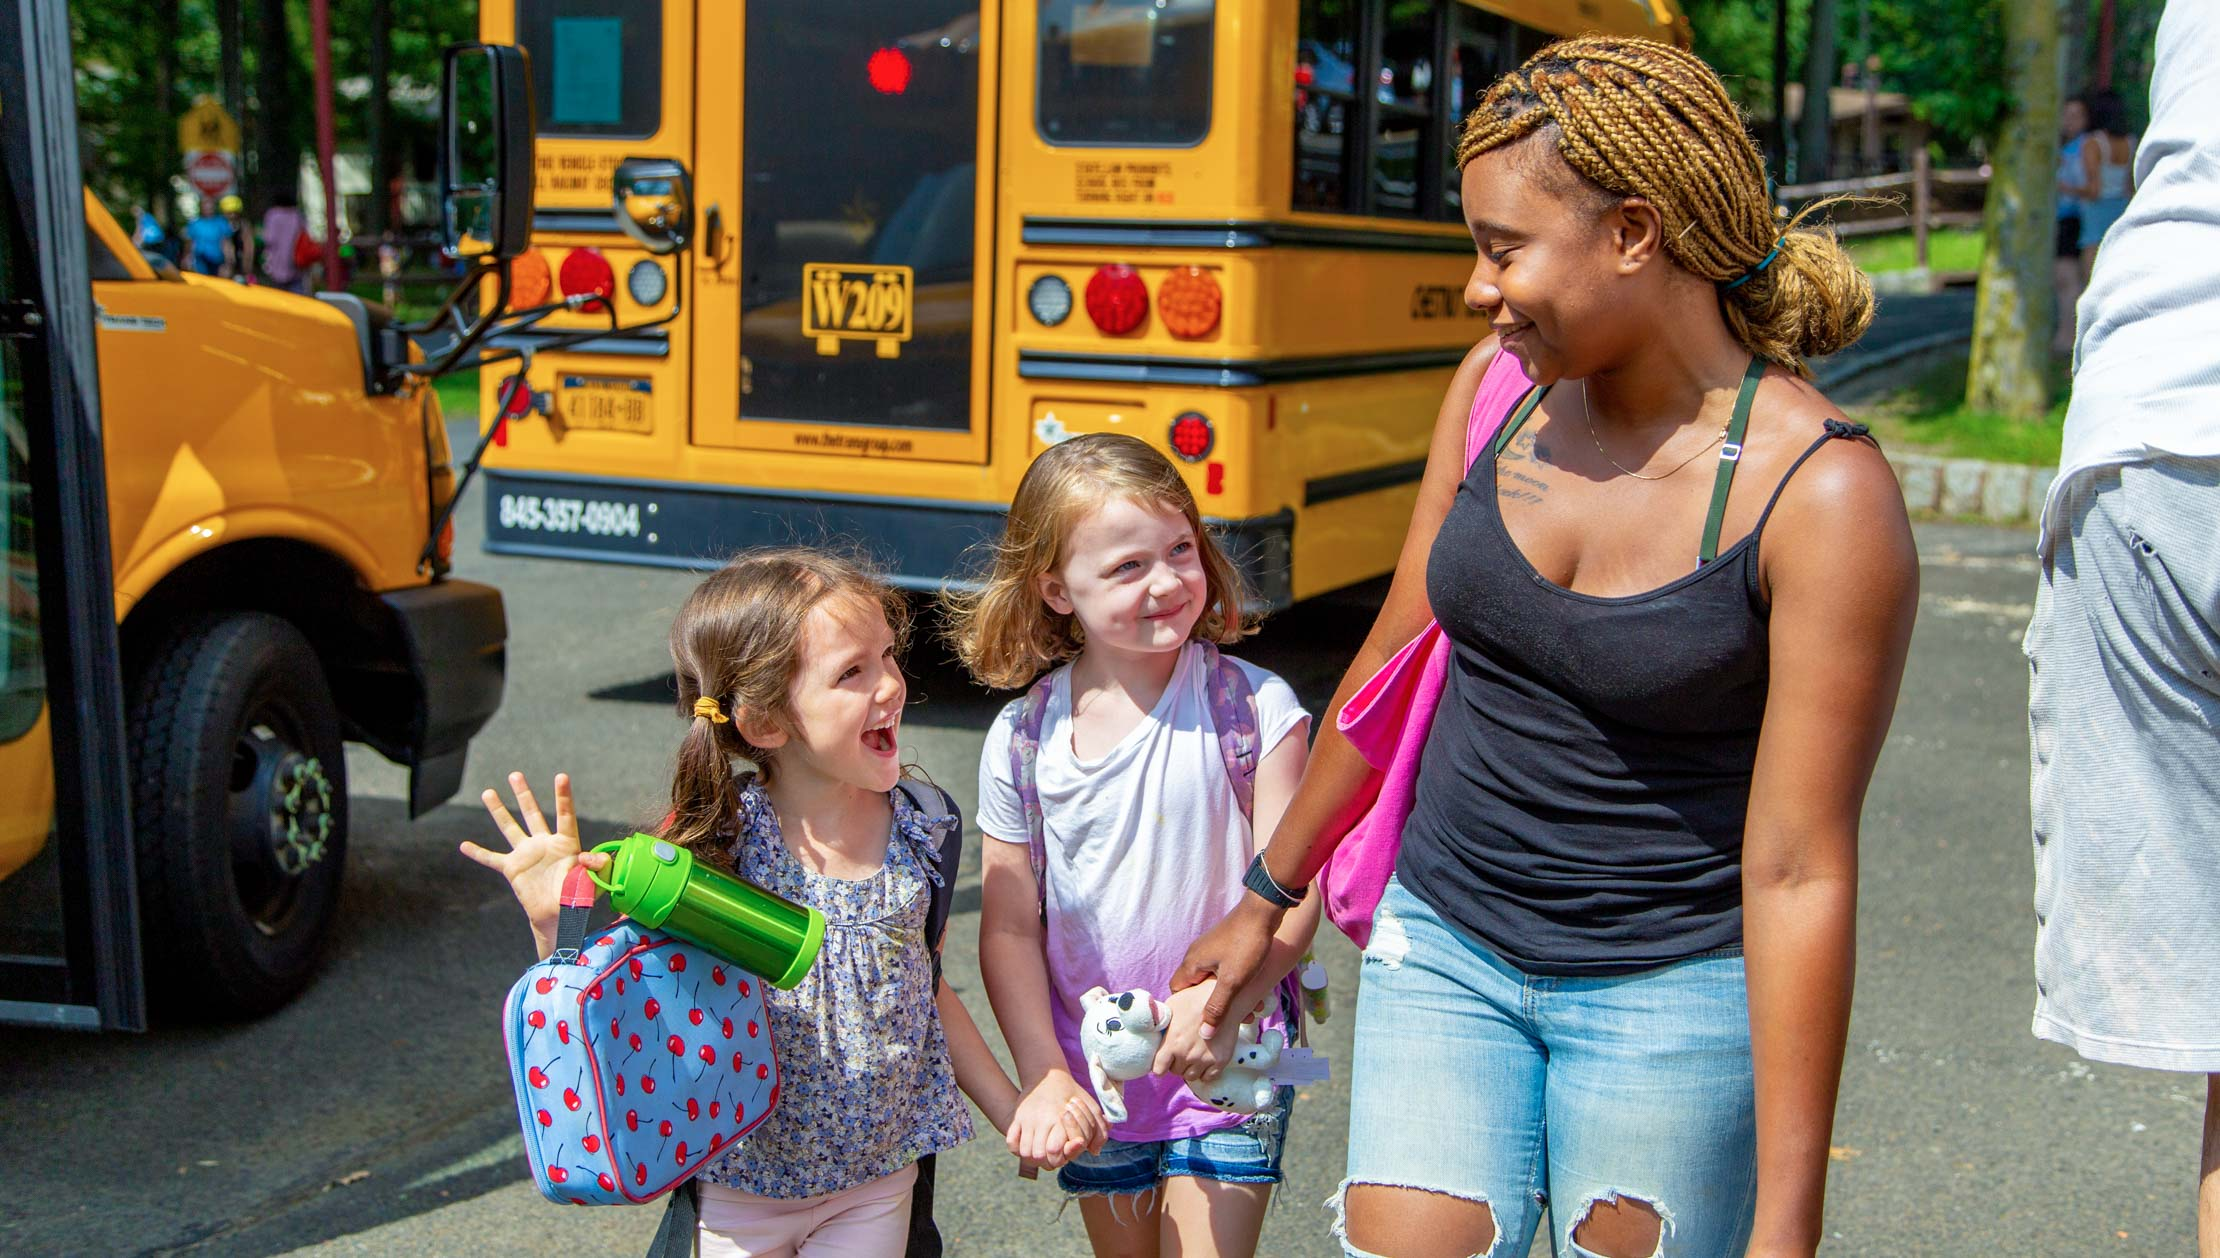 Campers walking with counselor from the bus